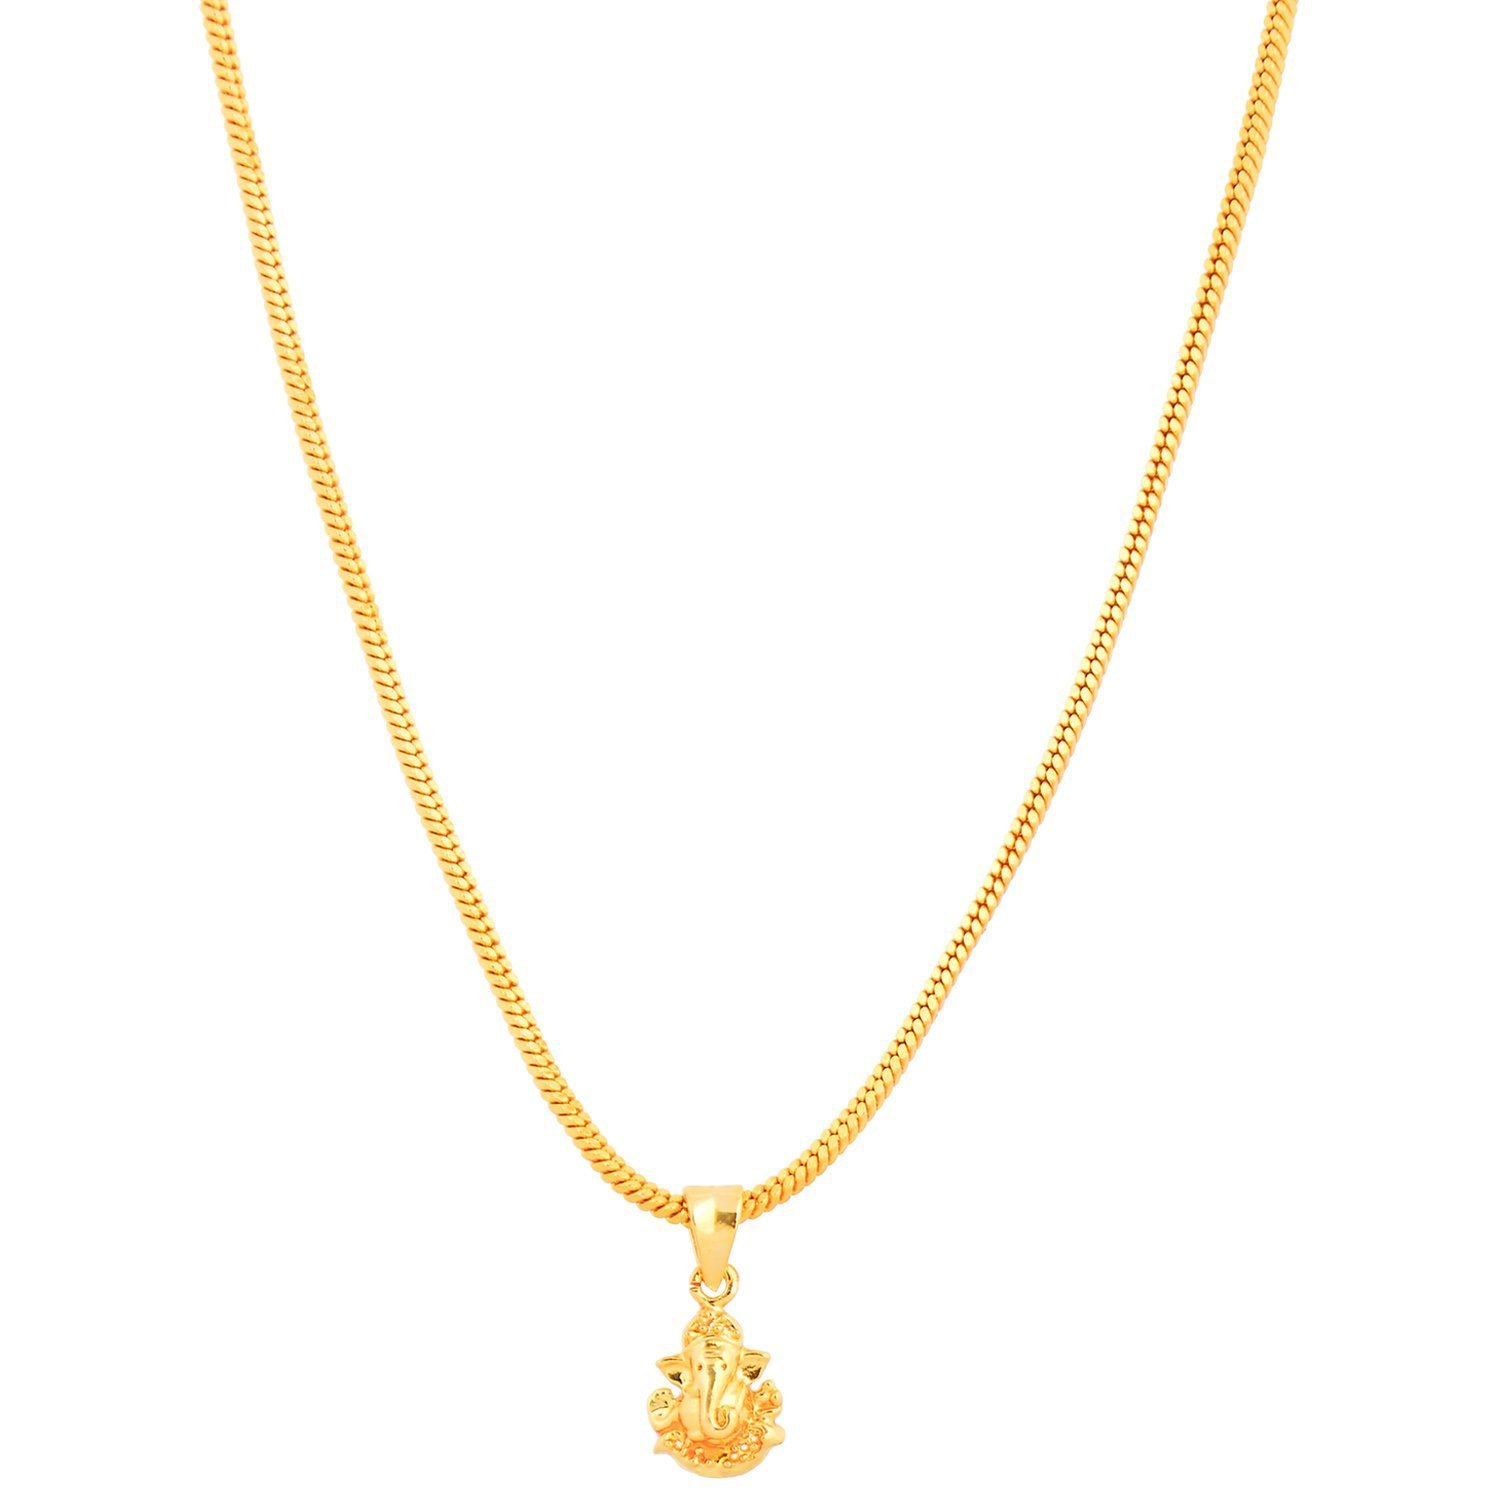 in pendant jewellery chain low men amazon kottage nr for golden gold plated india xznpkl hk at prices buy online dp handicraft store